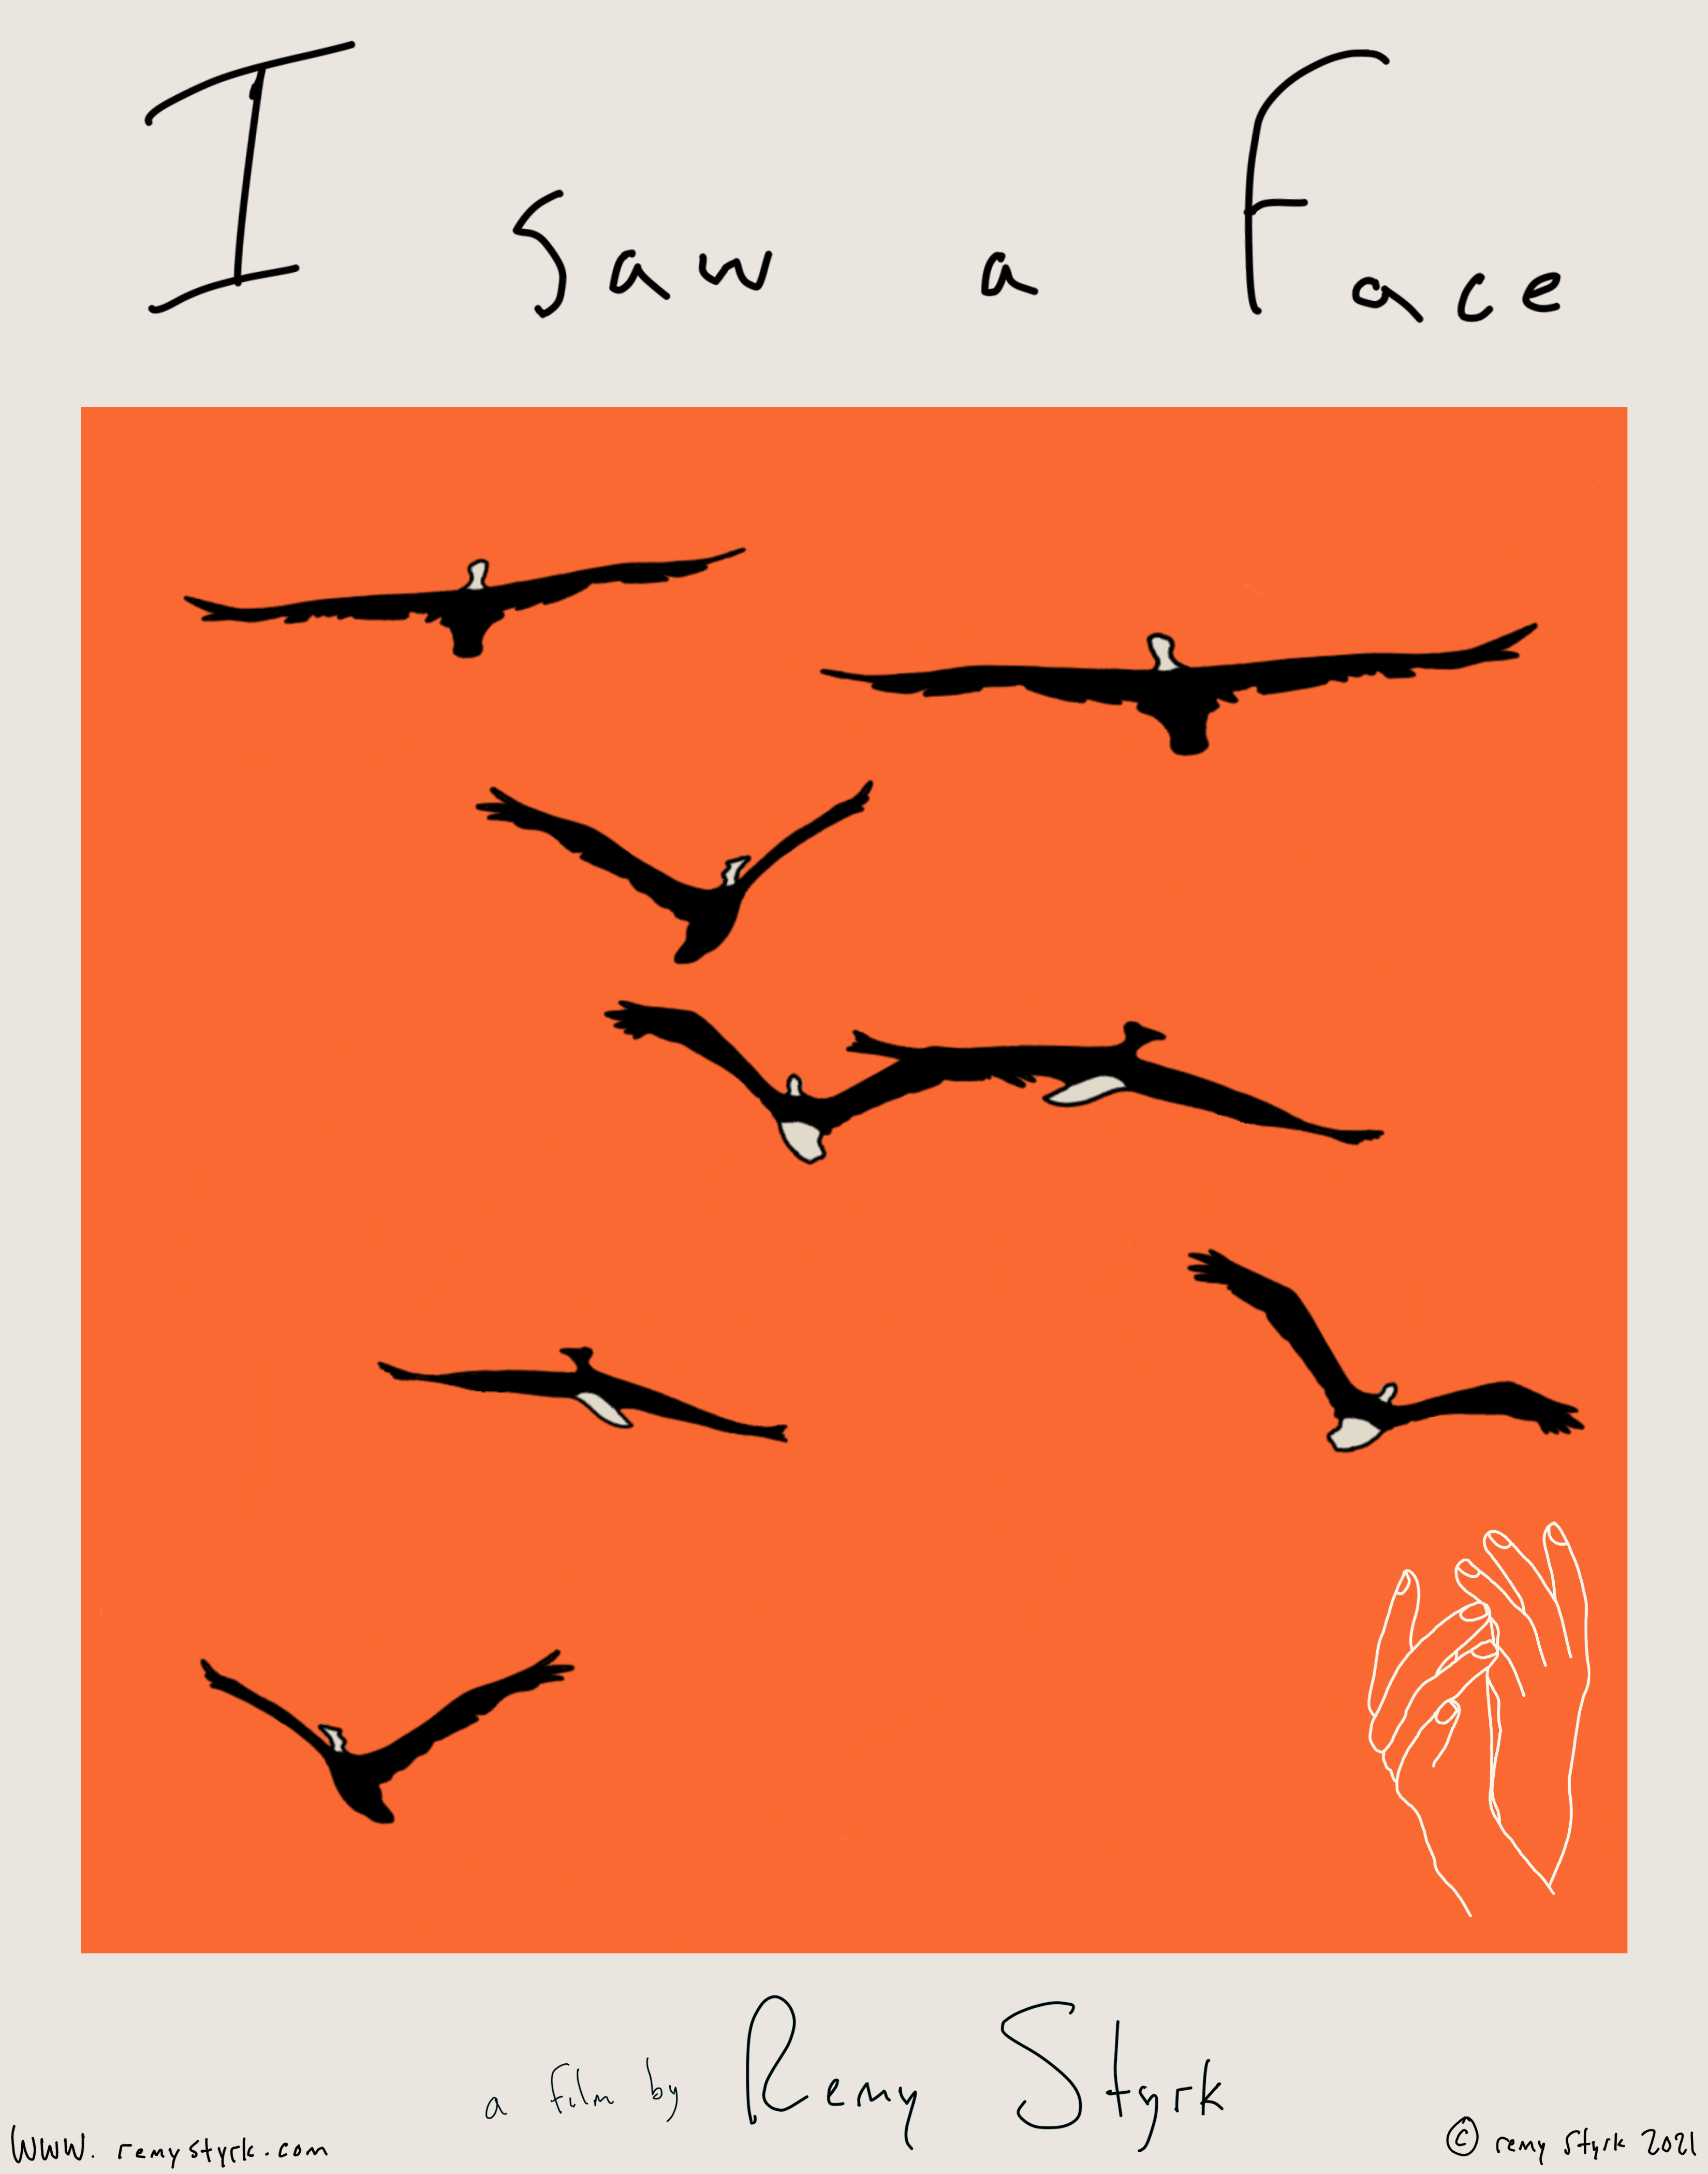 isaf movie poster